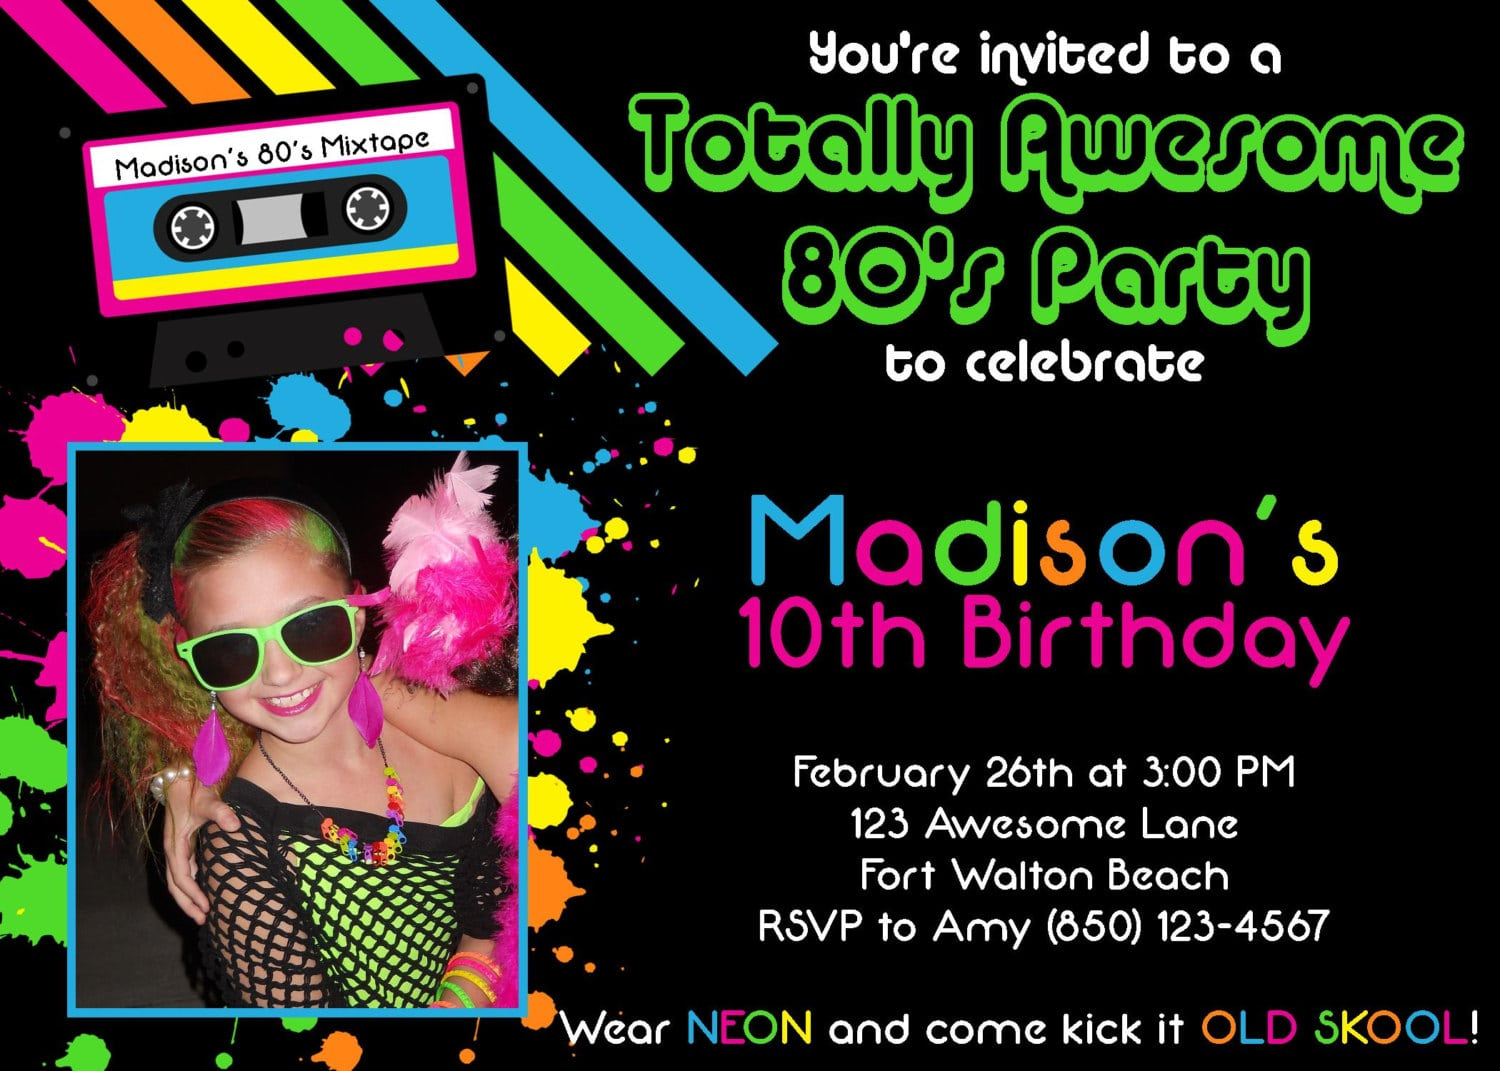 80s Party Invitations 80s Party Invitations With A Decorative